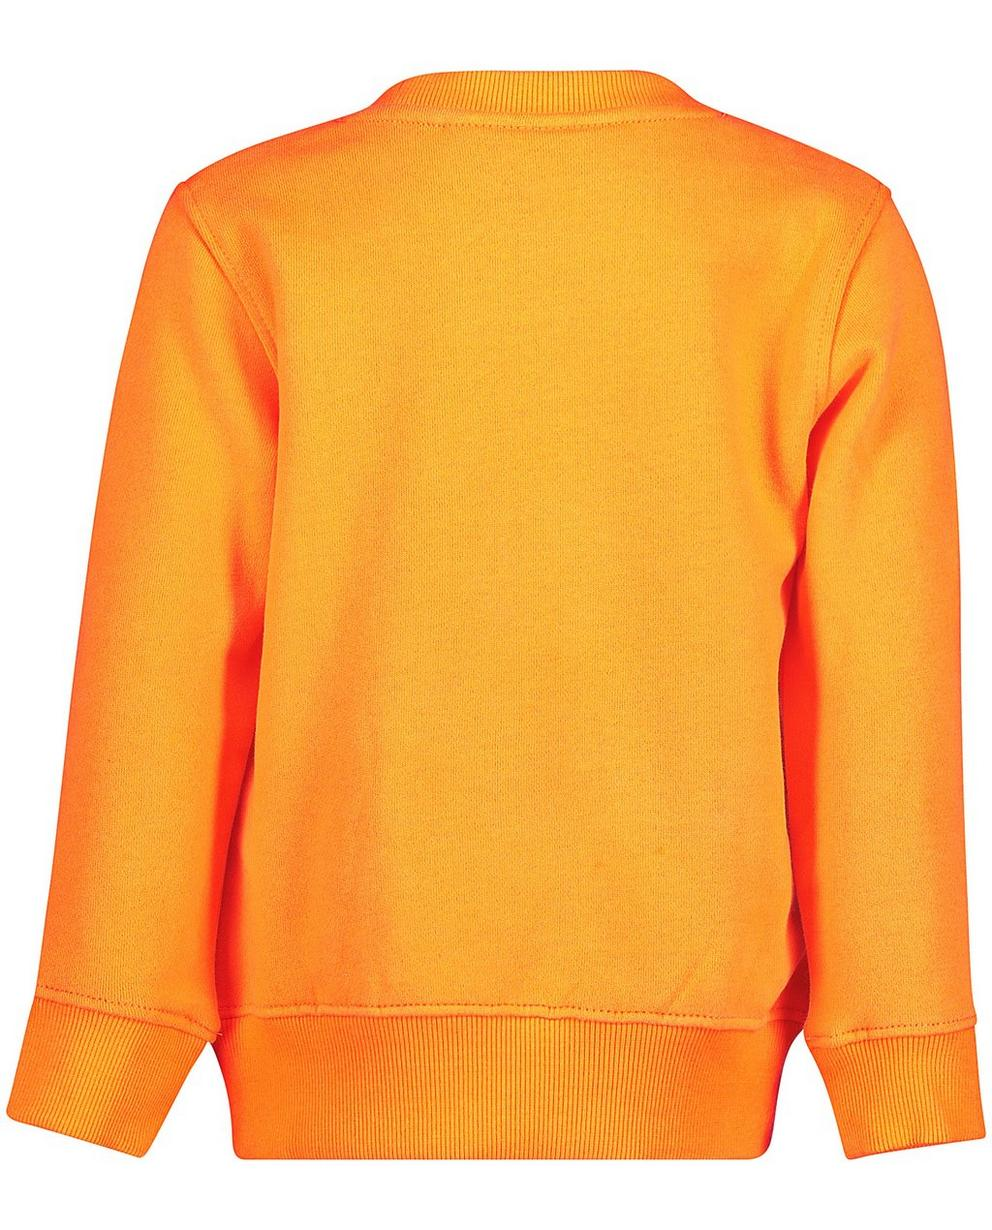 Sweats - orange - Sweat orange